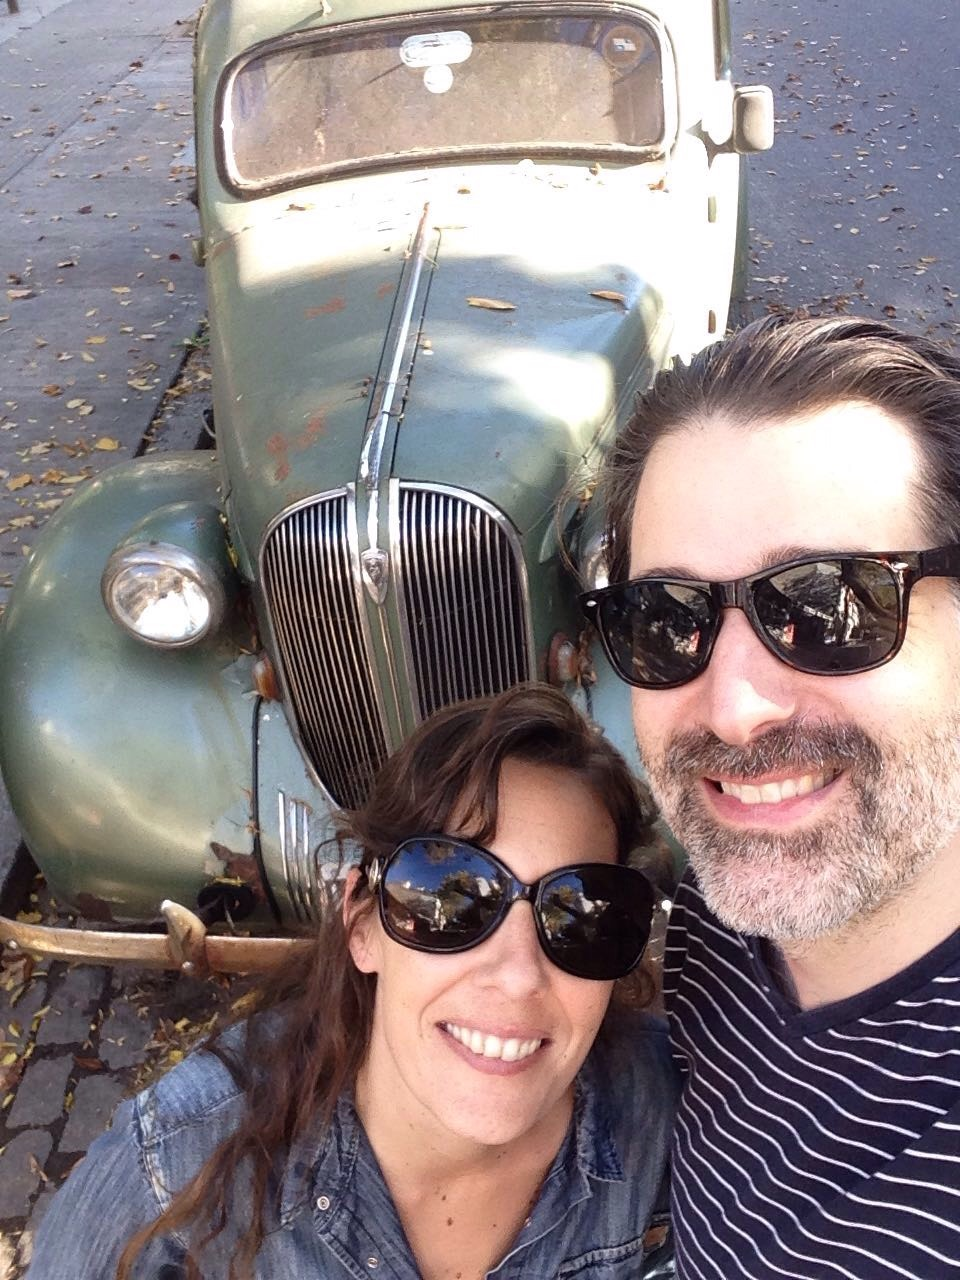 2017 - With Sol in Buenos Aires, and a classic car we found parked on the street.